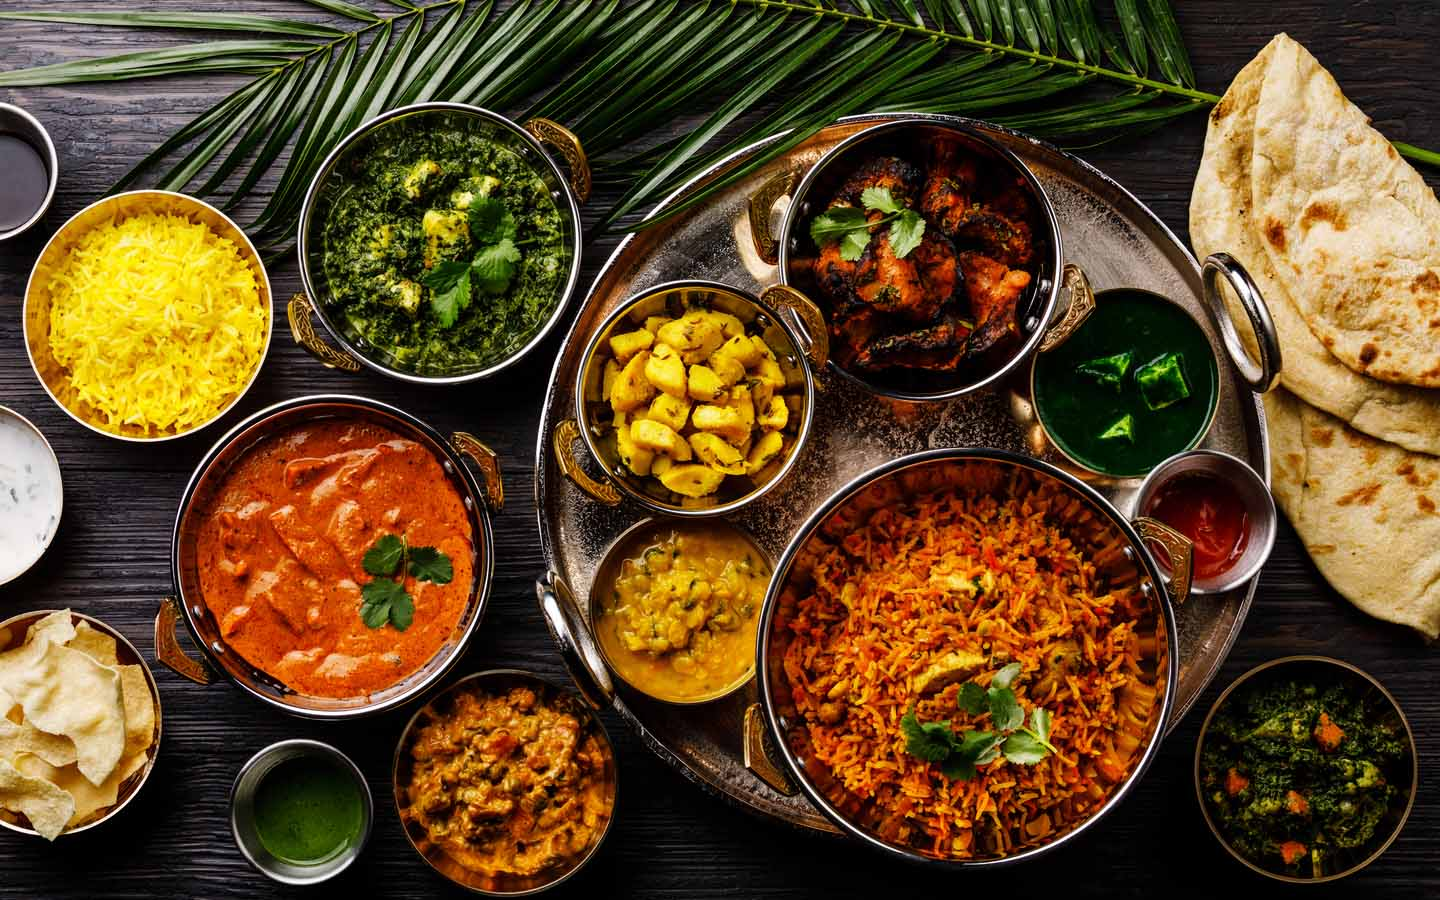 Try the authentic dishes at this Indian restaurant in Business Bay.